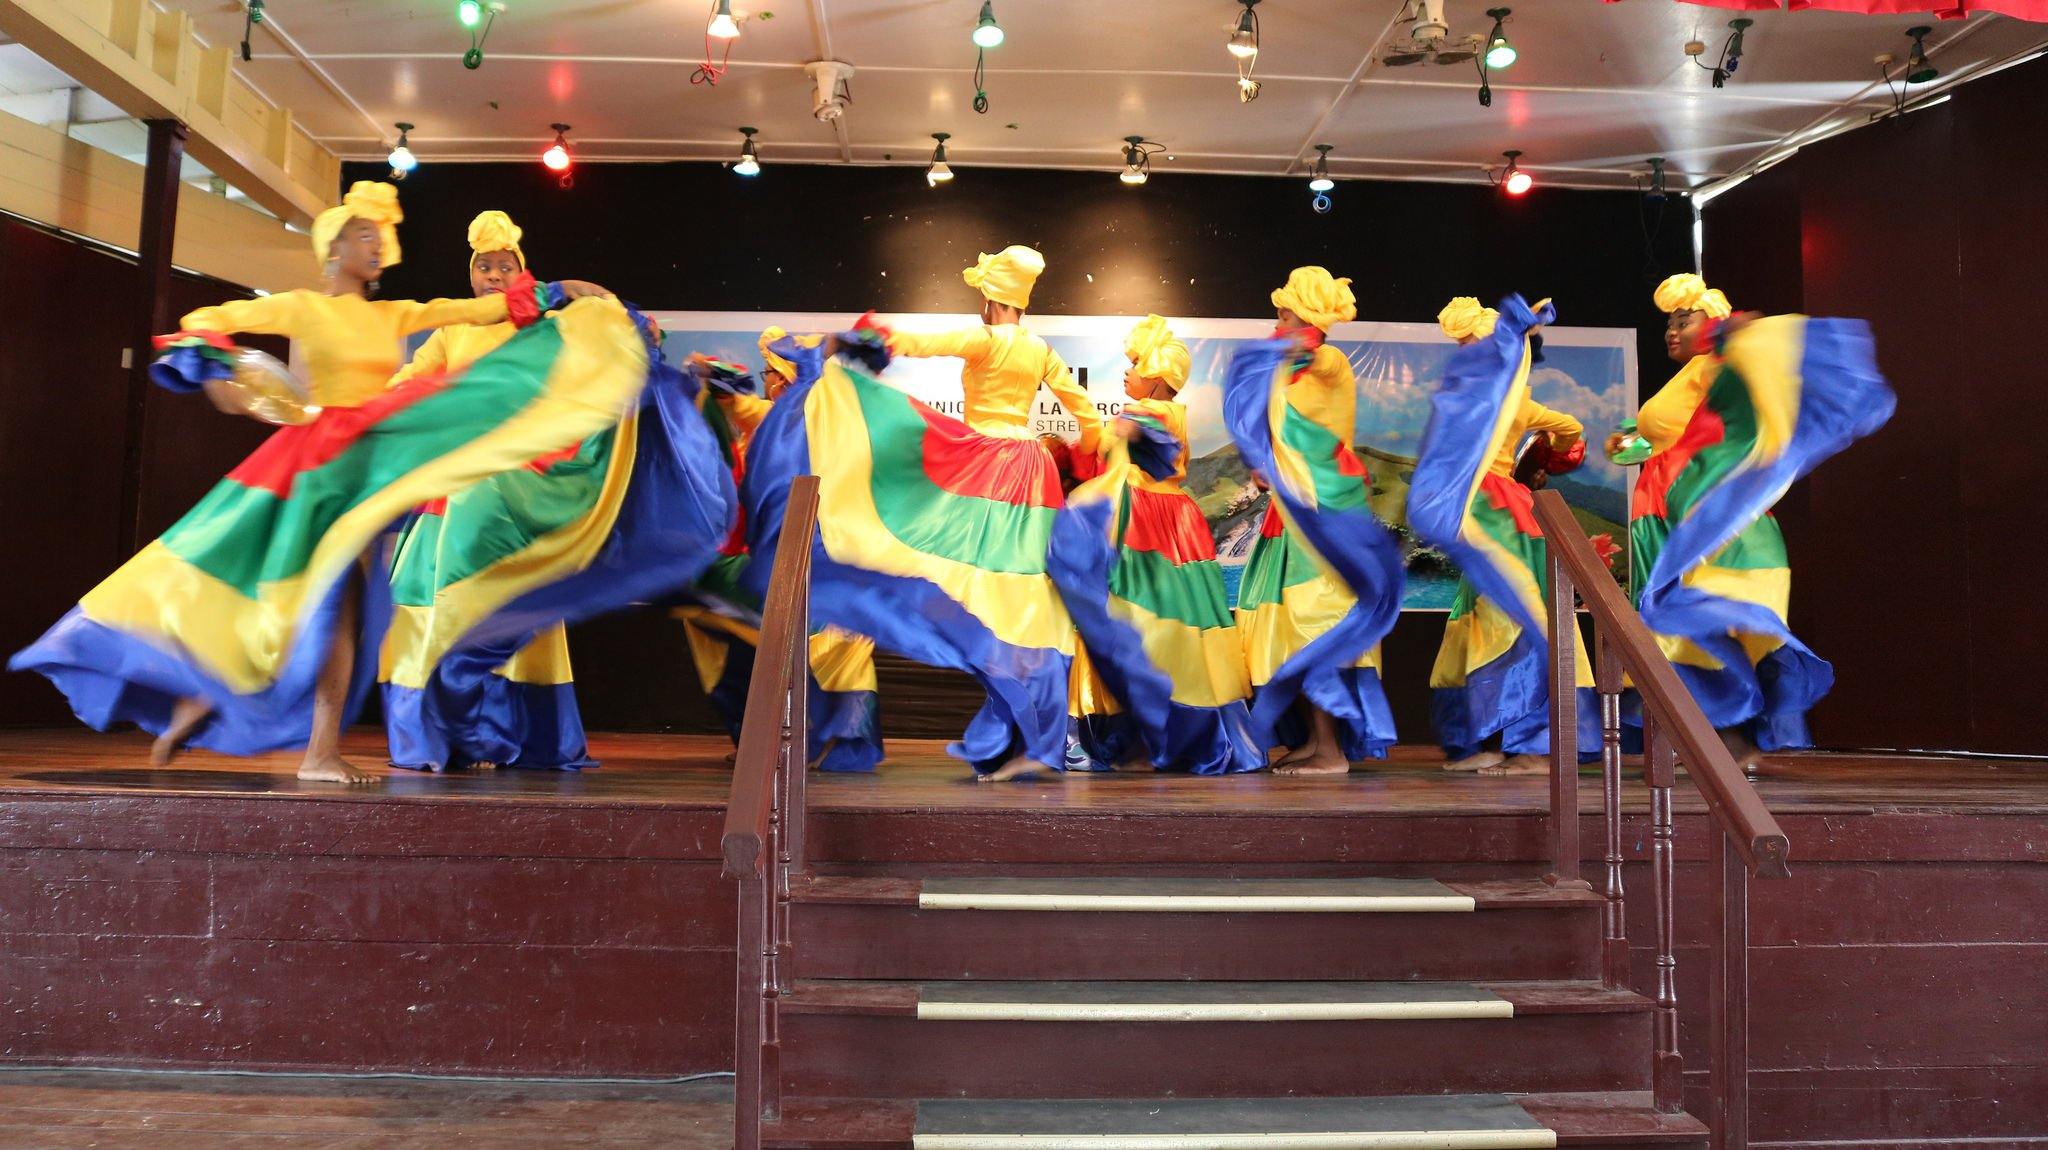 Photo of Fascinating, sophisticated displays at The Bishops' High School CARICOM Project event